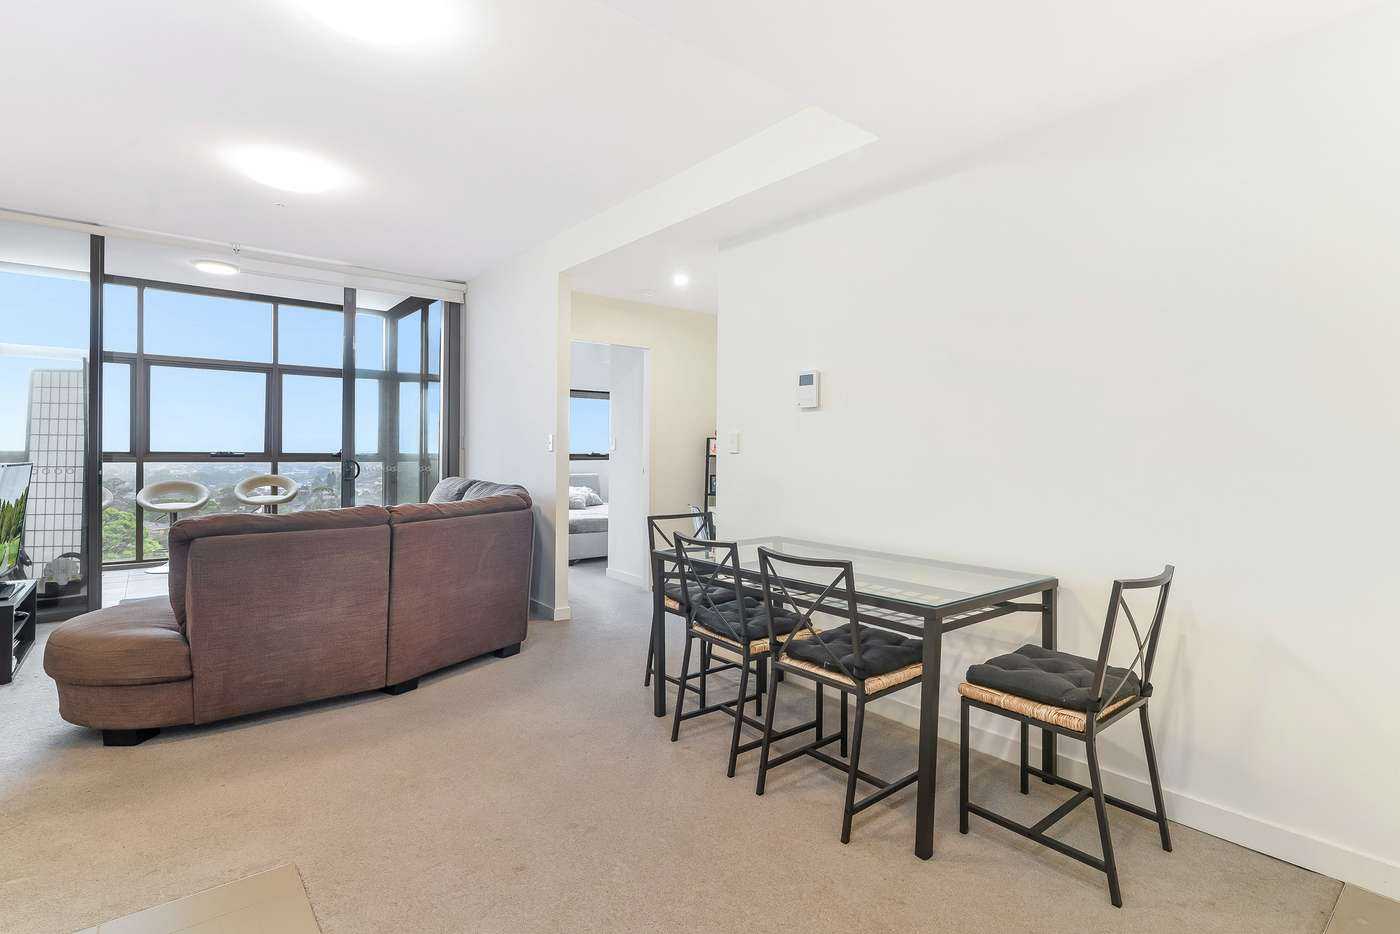 Fifth view of Homely apartment listing, 616/23-31 Treacy Street, Hurstville NSW 2220